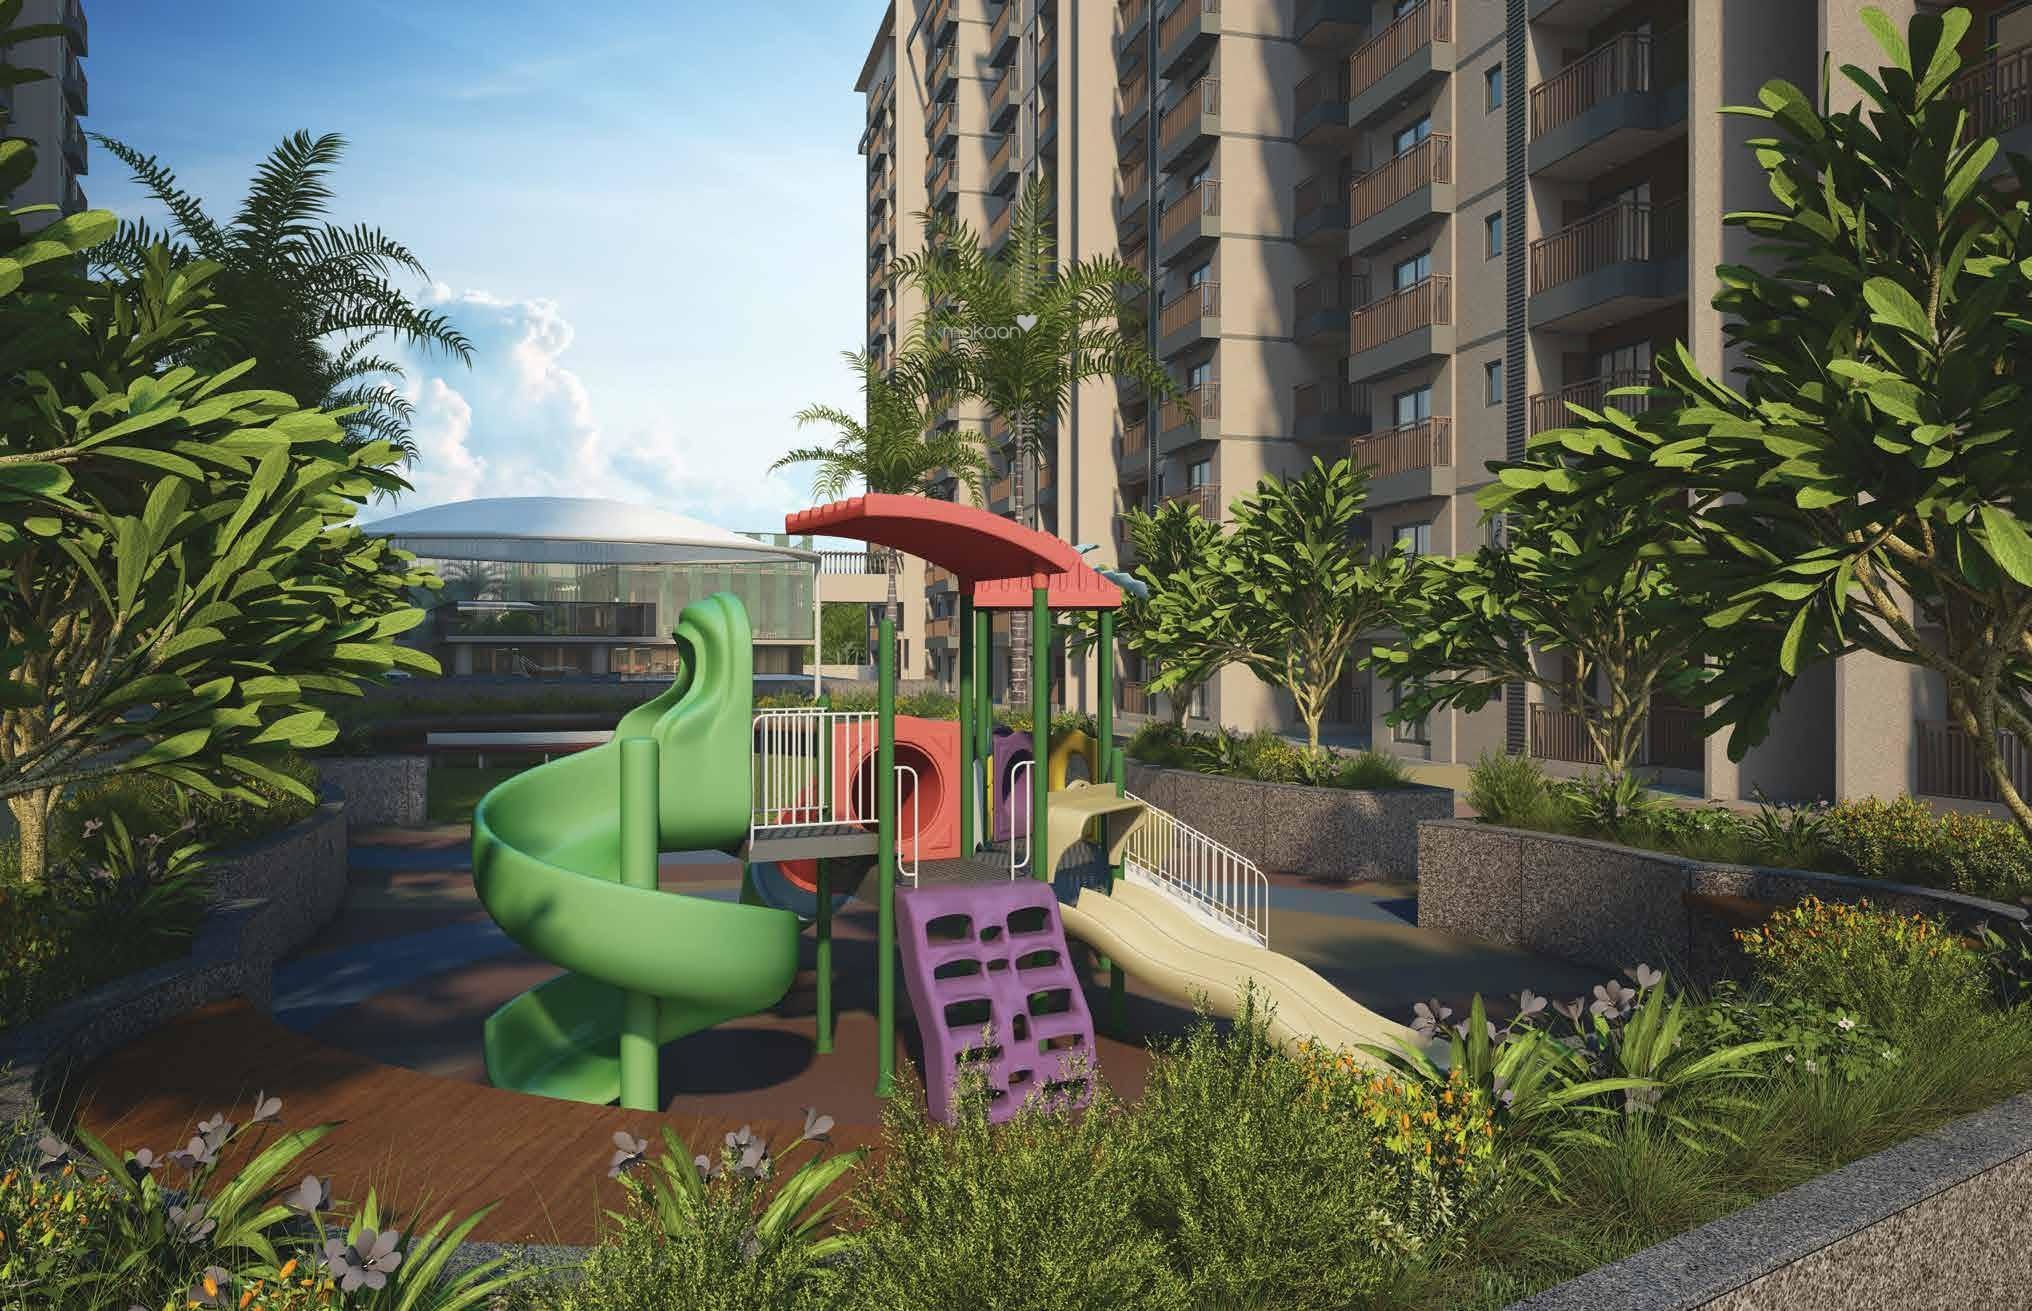 1771 sq ft 3BHK 3BHK+3T (1,771 sq ft) Property By Proptiger In Orchid Lakeview, Bellandur